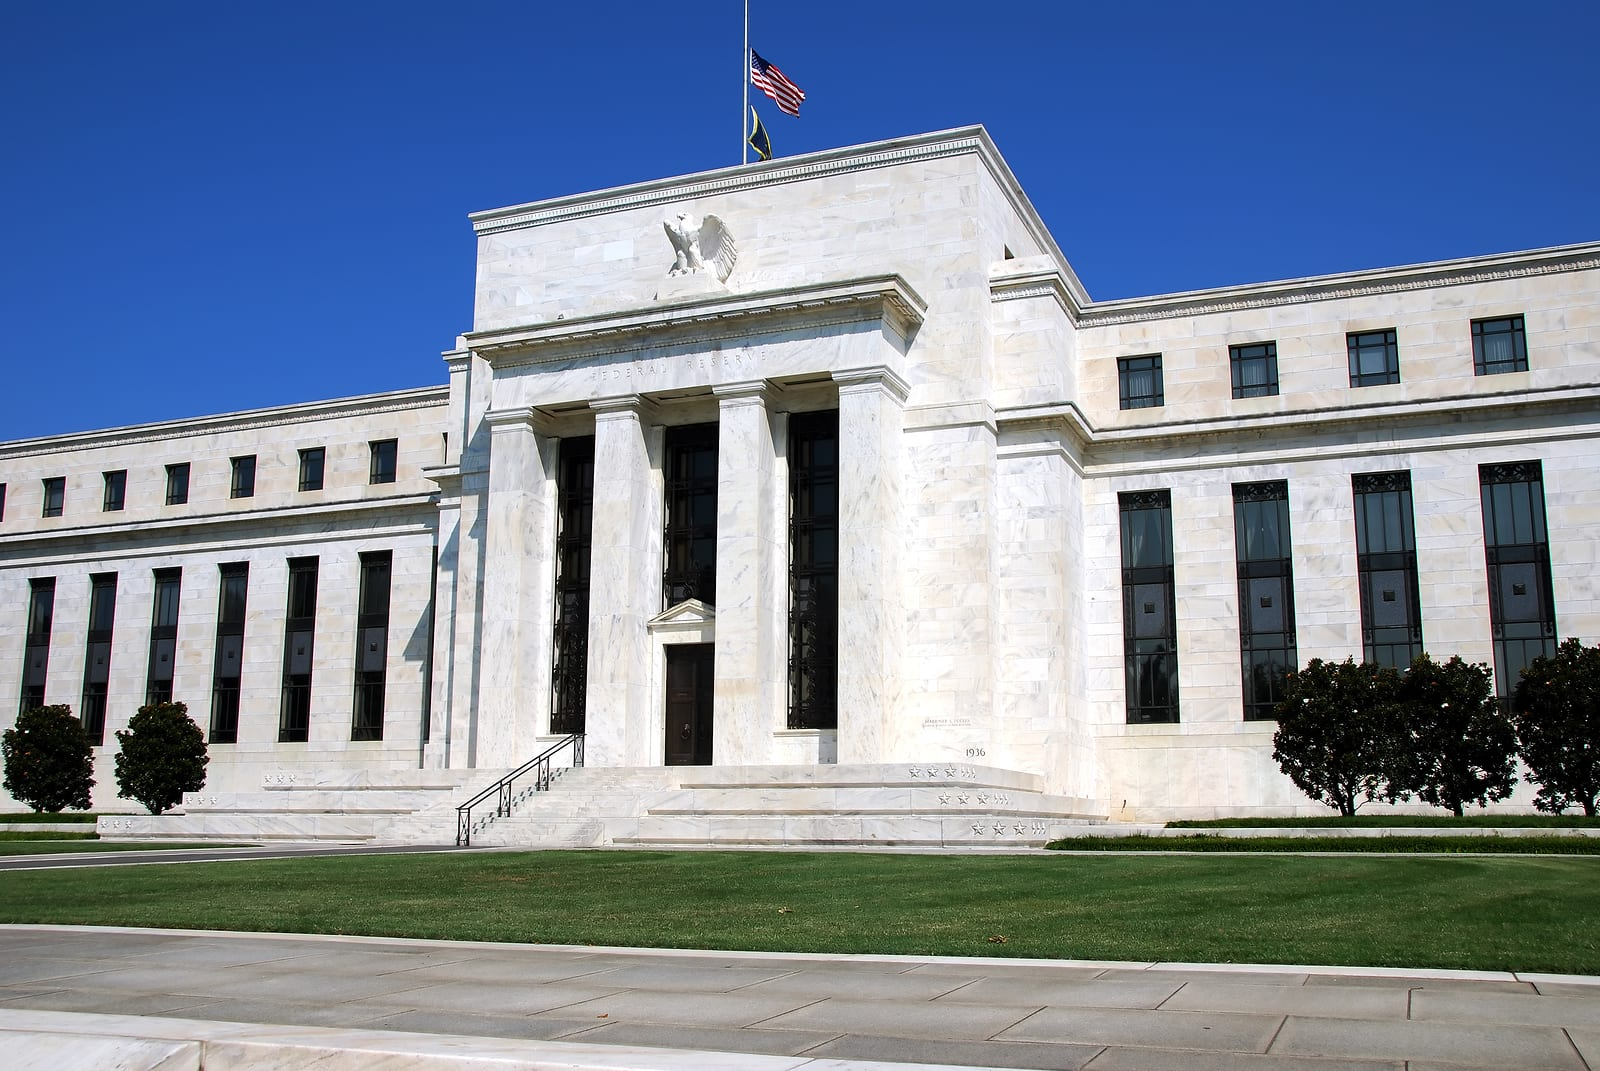 Federal Reserve Board News: FRB announces approval of proposals by First Interstate Bank